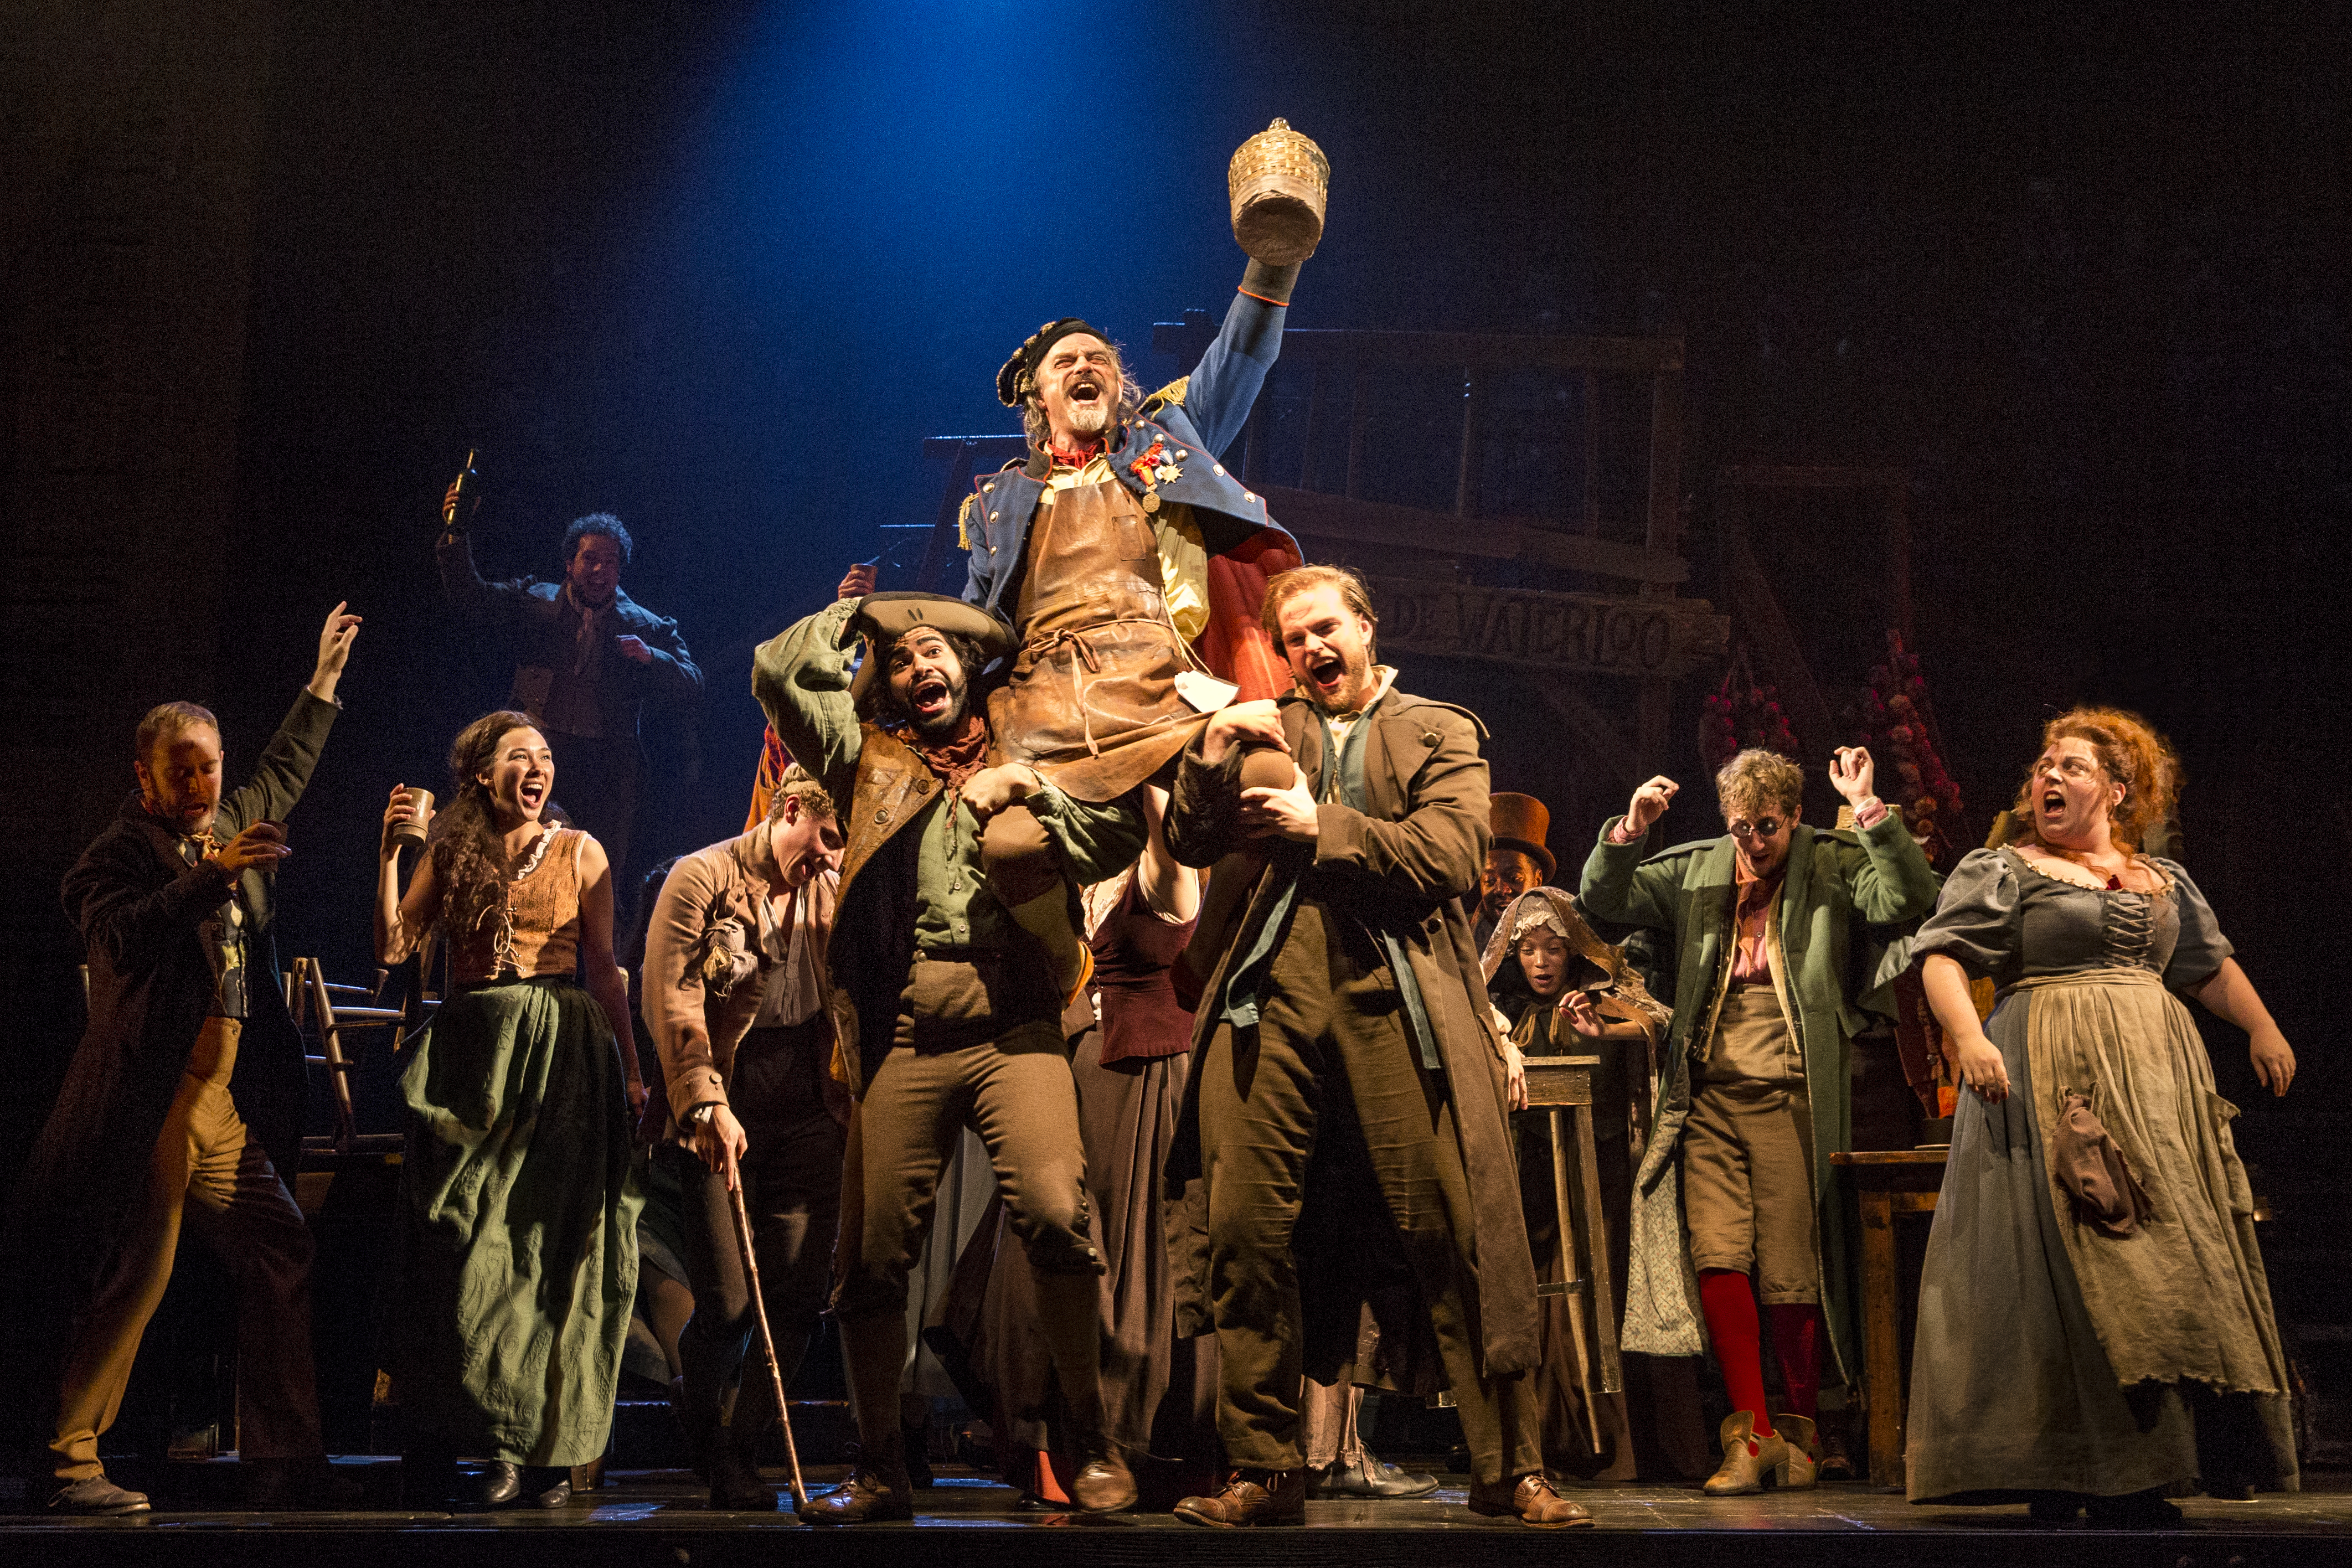 Thumbnail image for The 7 things to know about LES MISÉRABLES at Bass Hall blog post